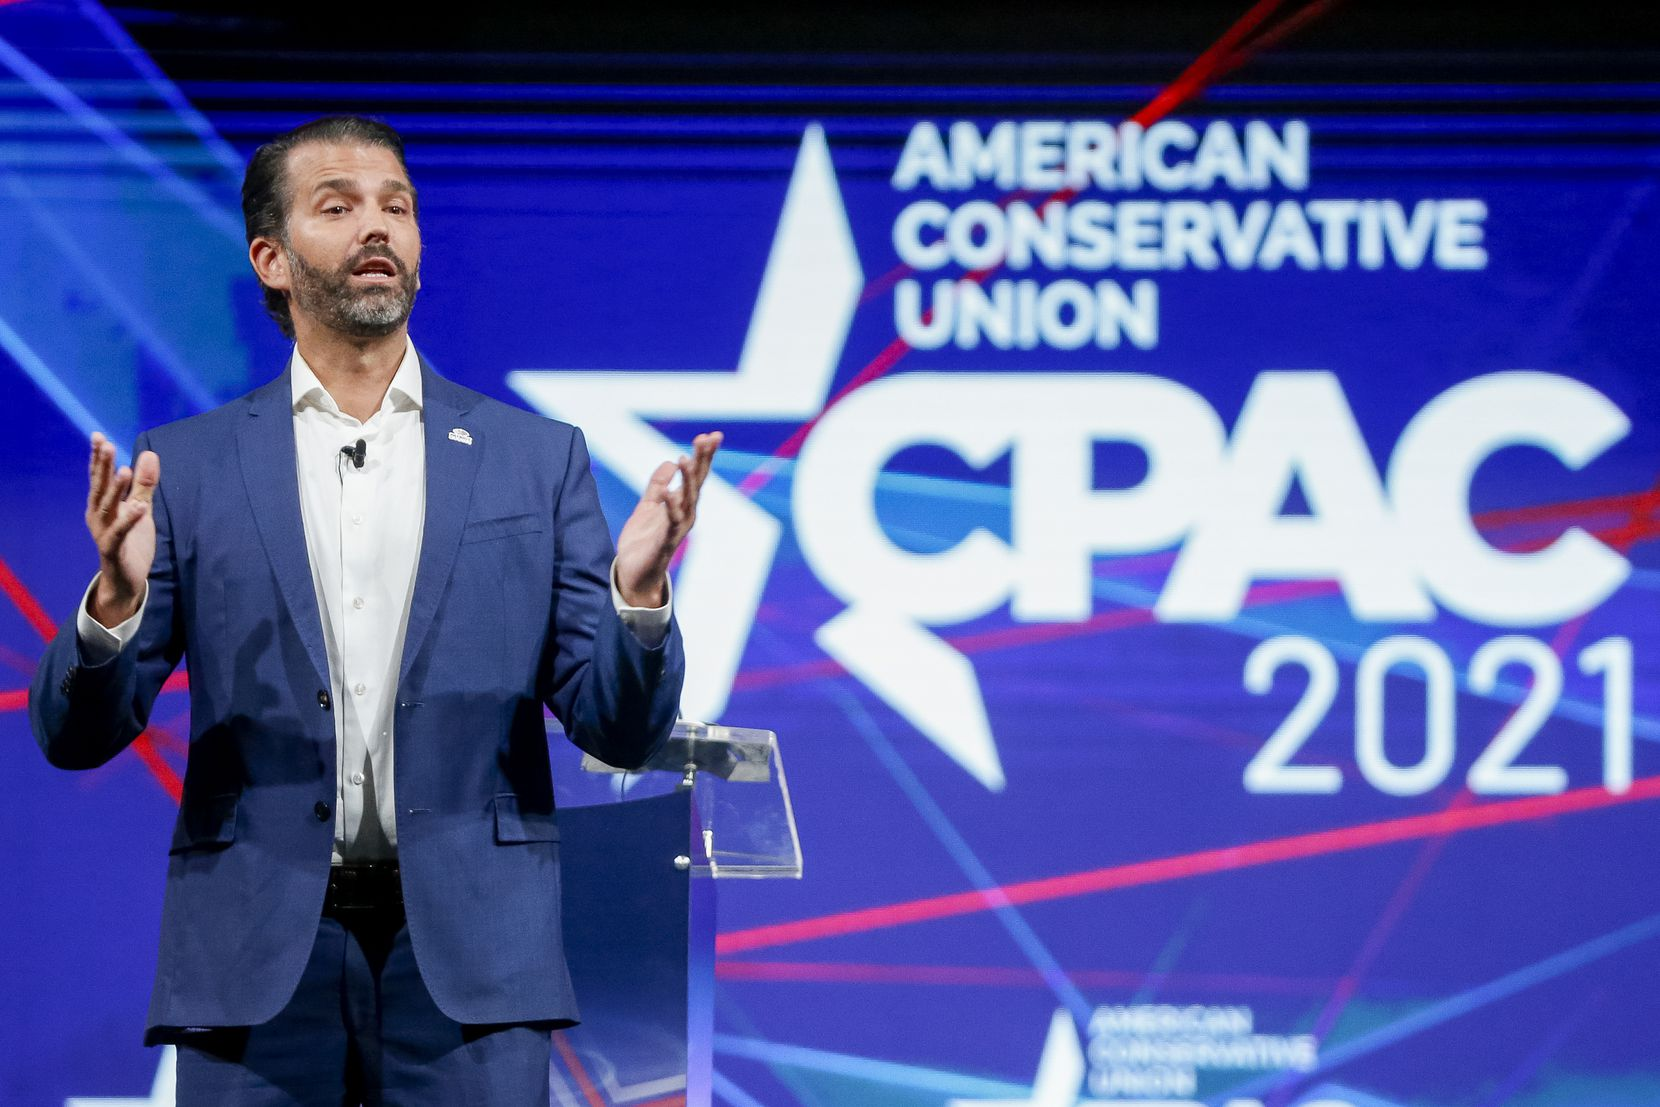 Donald Trump Jr. speaks at the Conservative Political Action Conference on Friday, July 9, 2021, in Dallas. (Elias Valverde II/The Dallas Morning News)